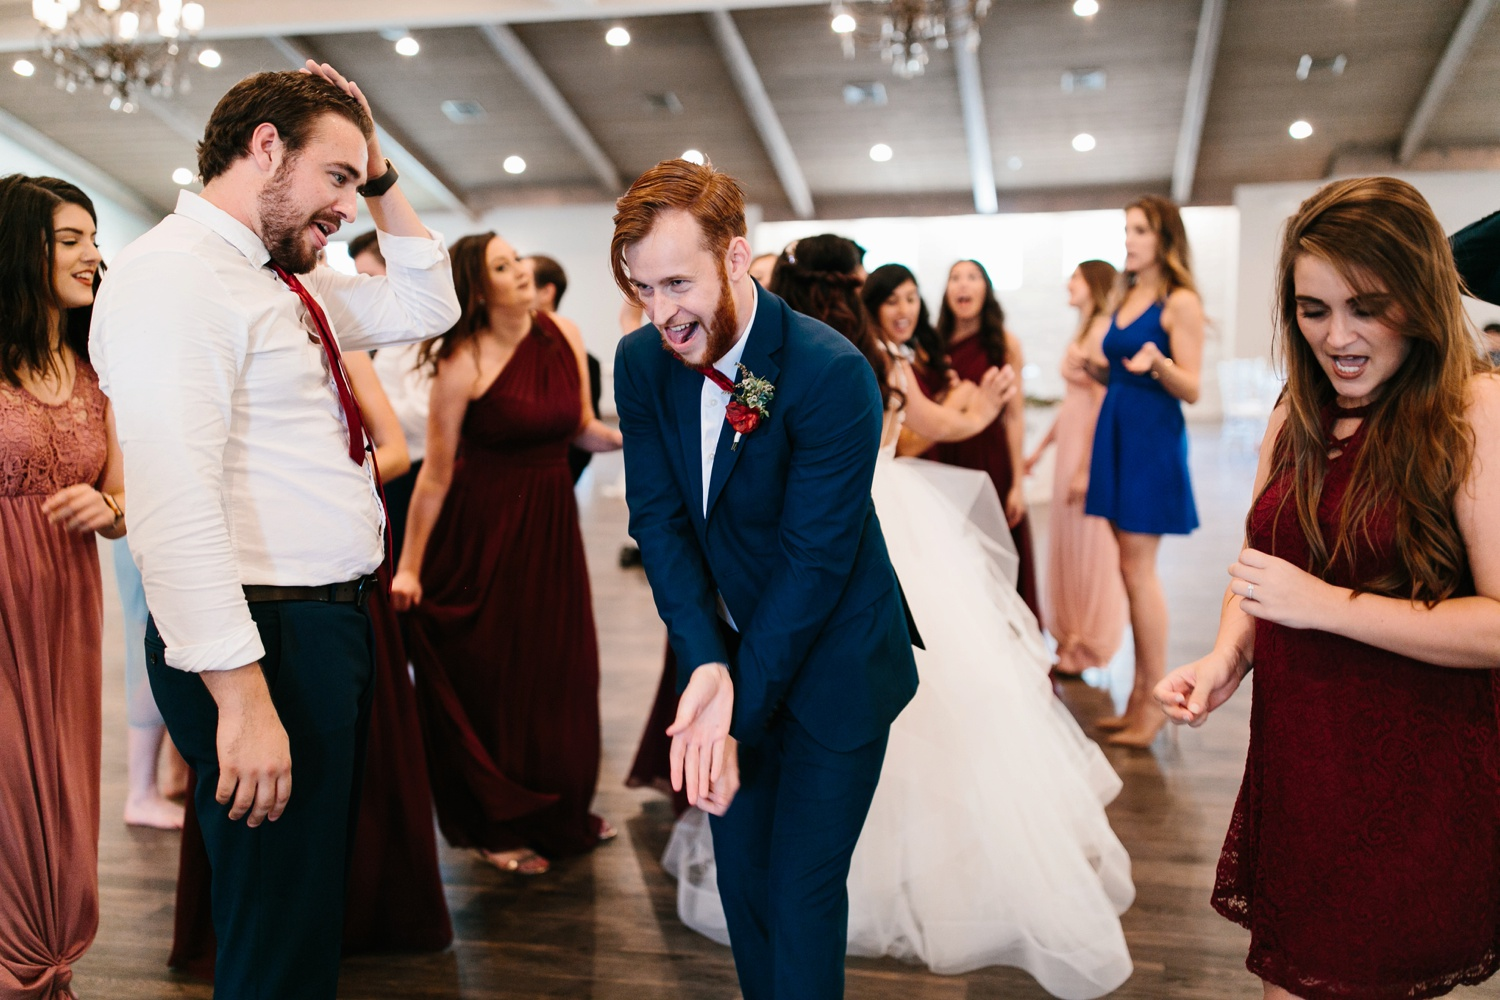 Grant + Lysette | a vibrant, deep burgundy and navy, and mixed metals wedding at Hidden Pines Chapel by North Texas Wedding Photographer Rachel Meagan Photography 182